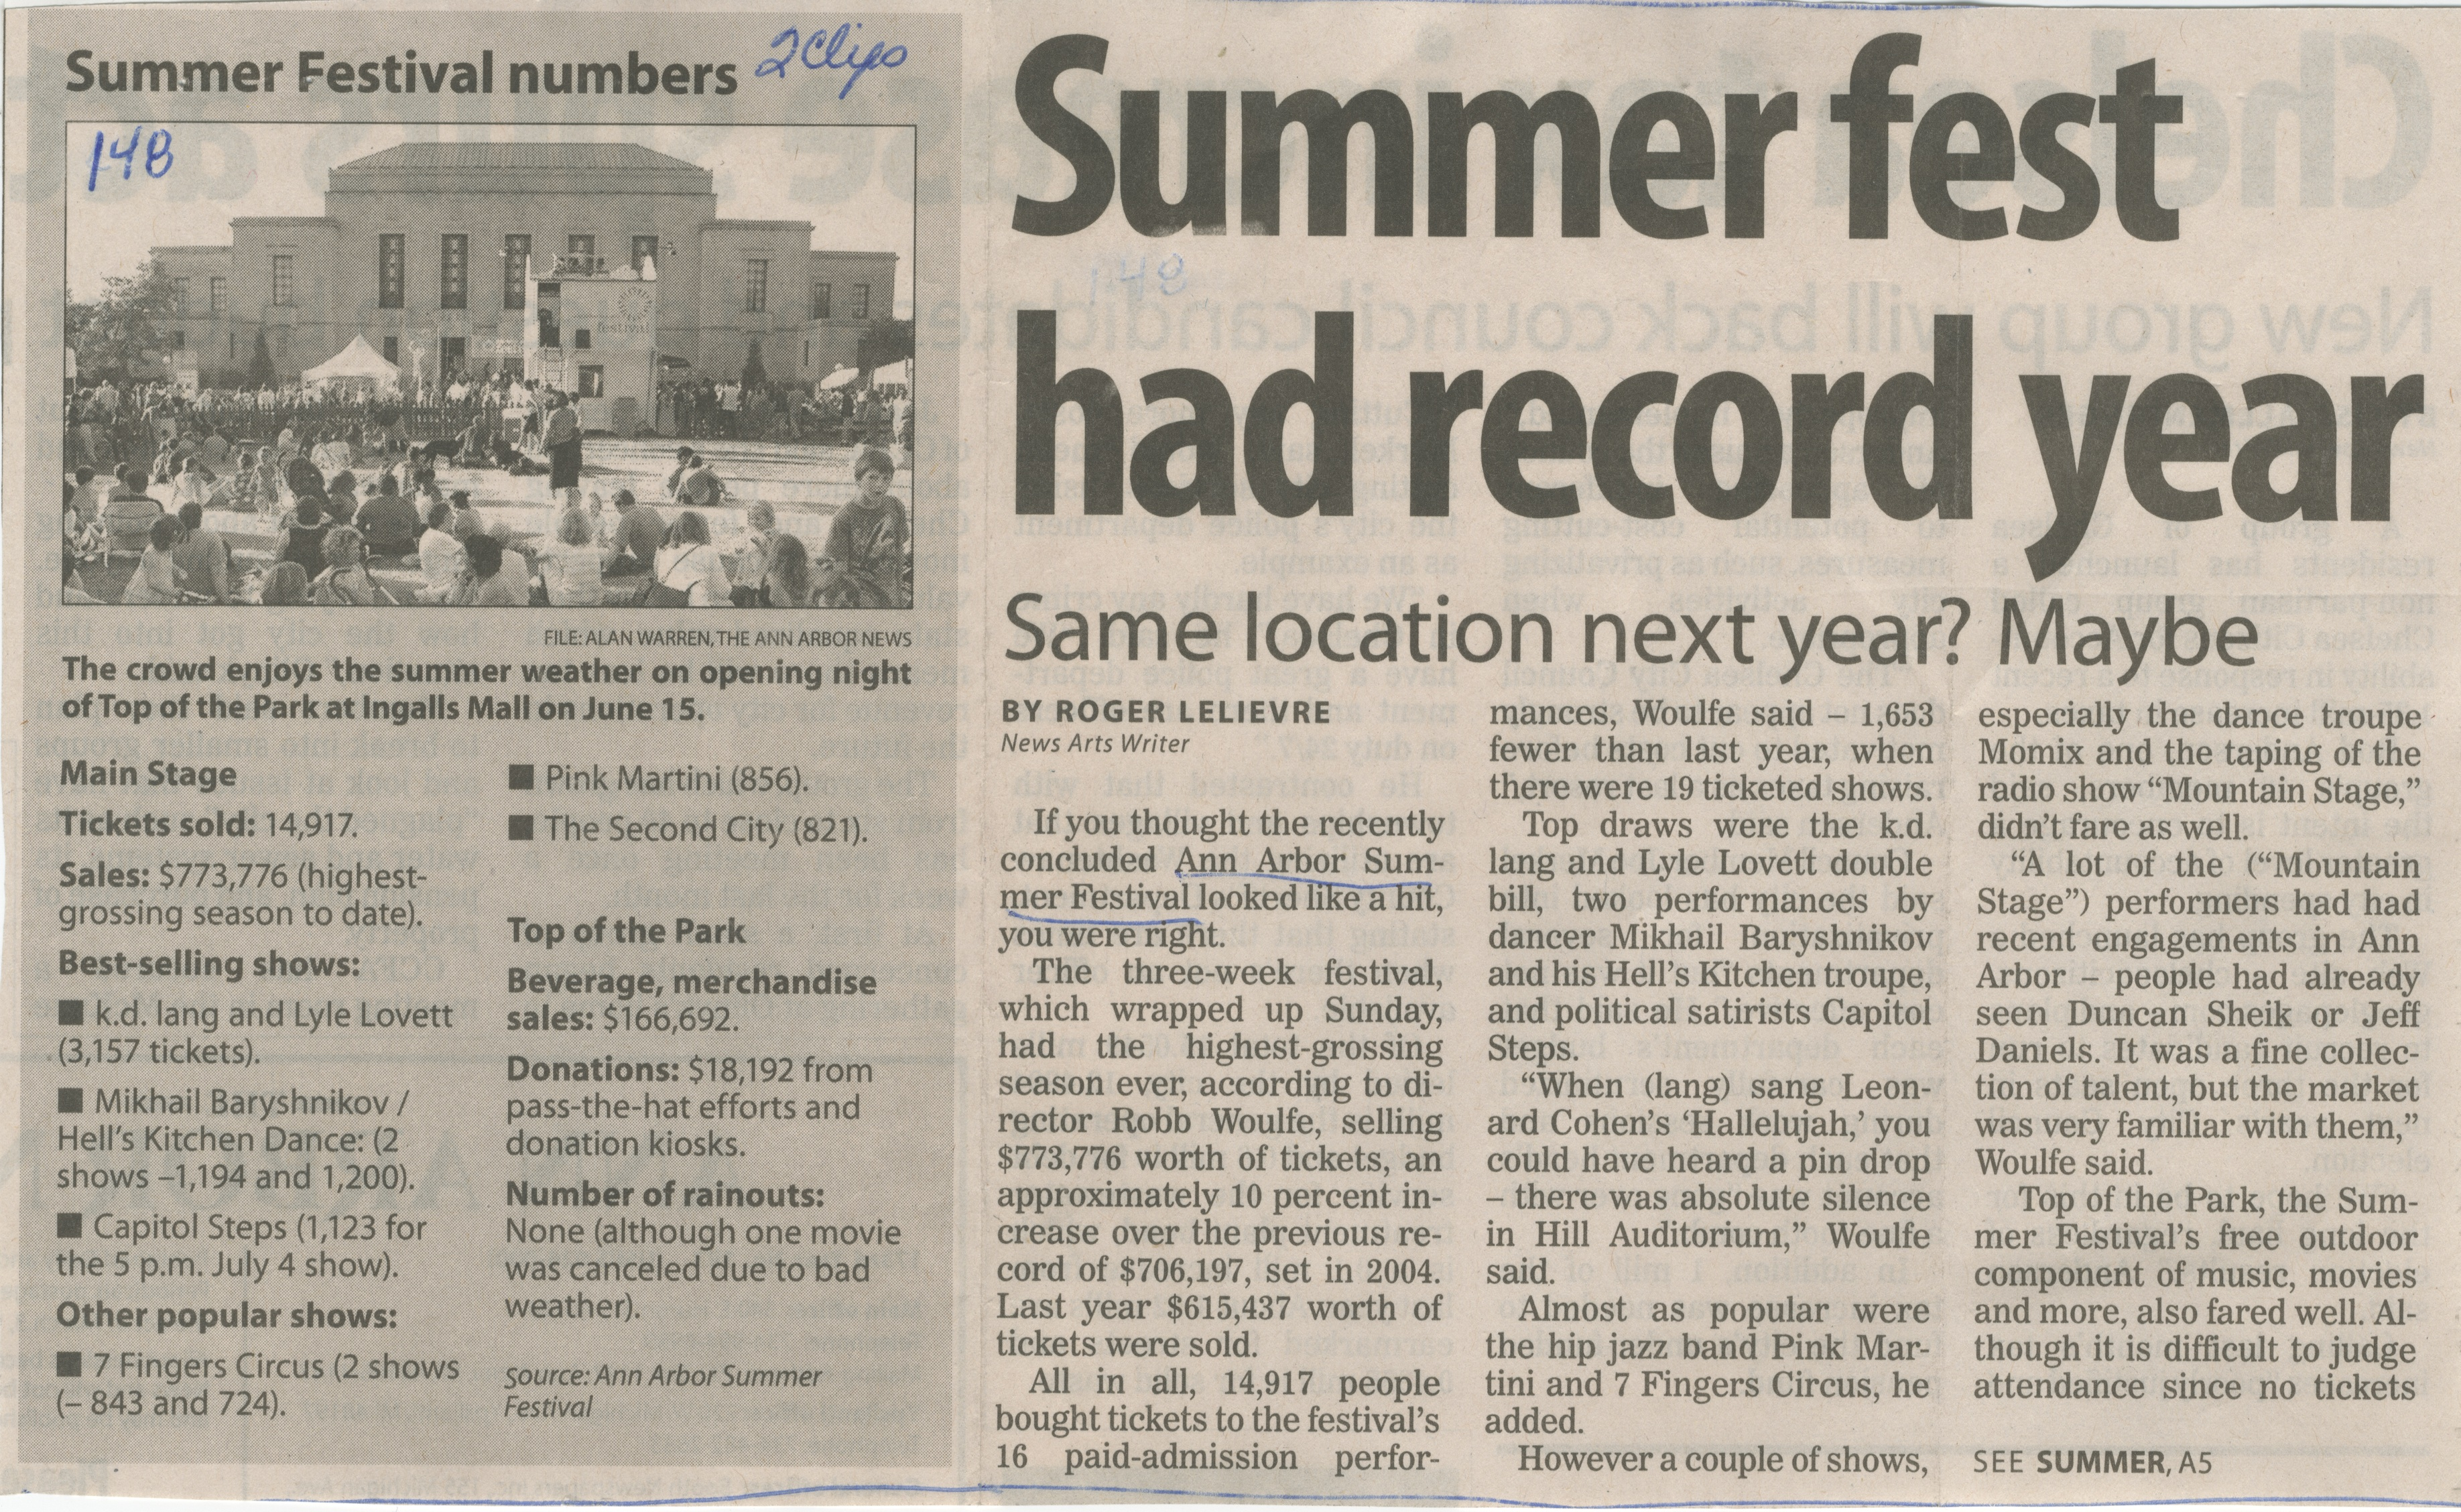 Summer fest had record year image